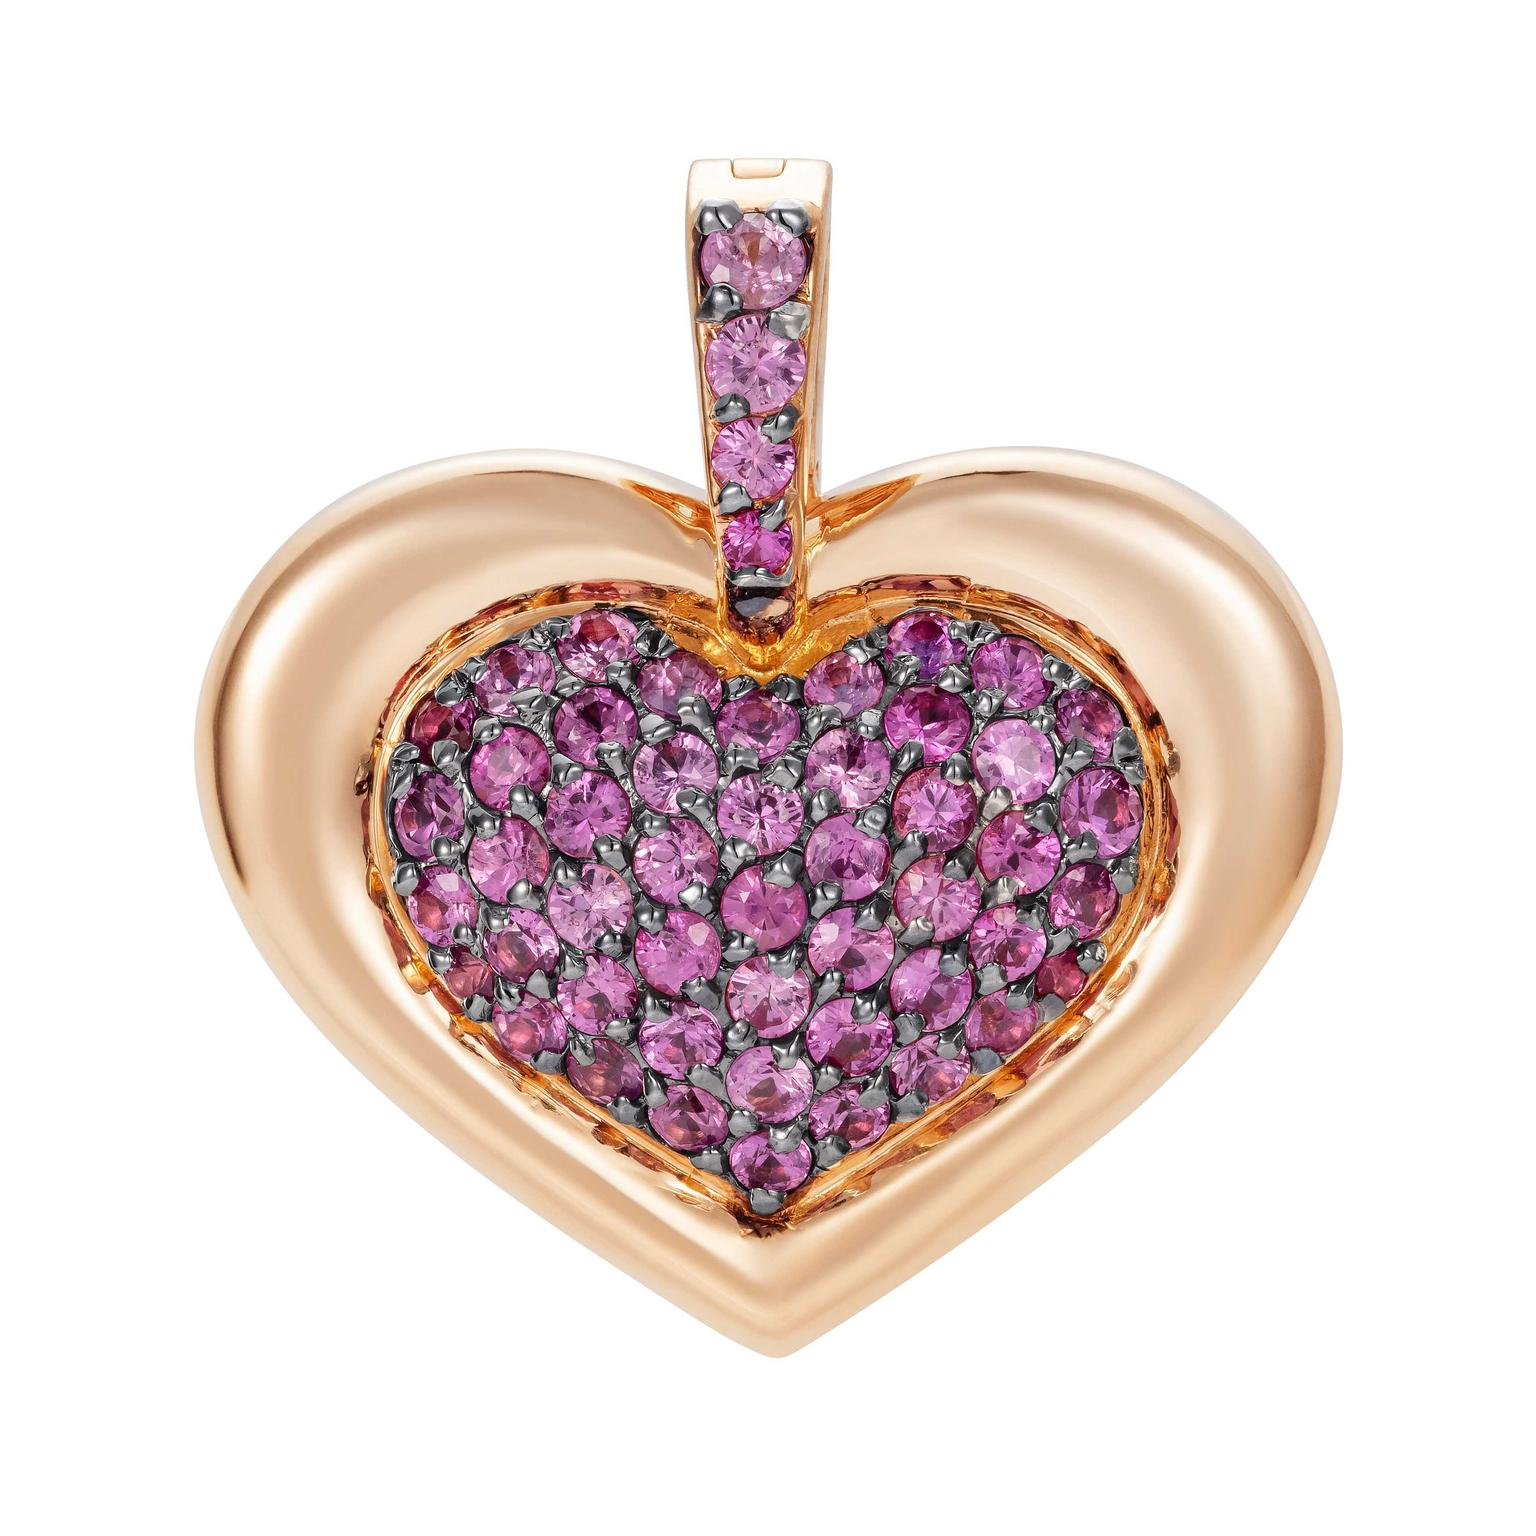 NAdine Aysoy PENDANT PINK SAPPHIRE HEART, 18K Rose Gold (5.61g) + Pink Sapphire 1.35 CT, $3420